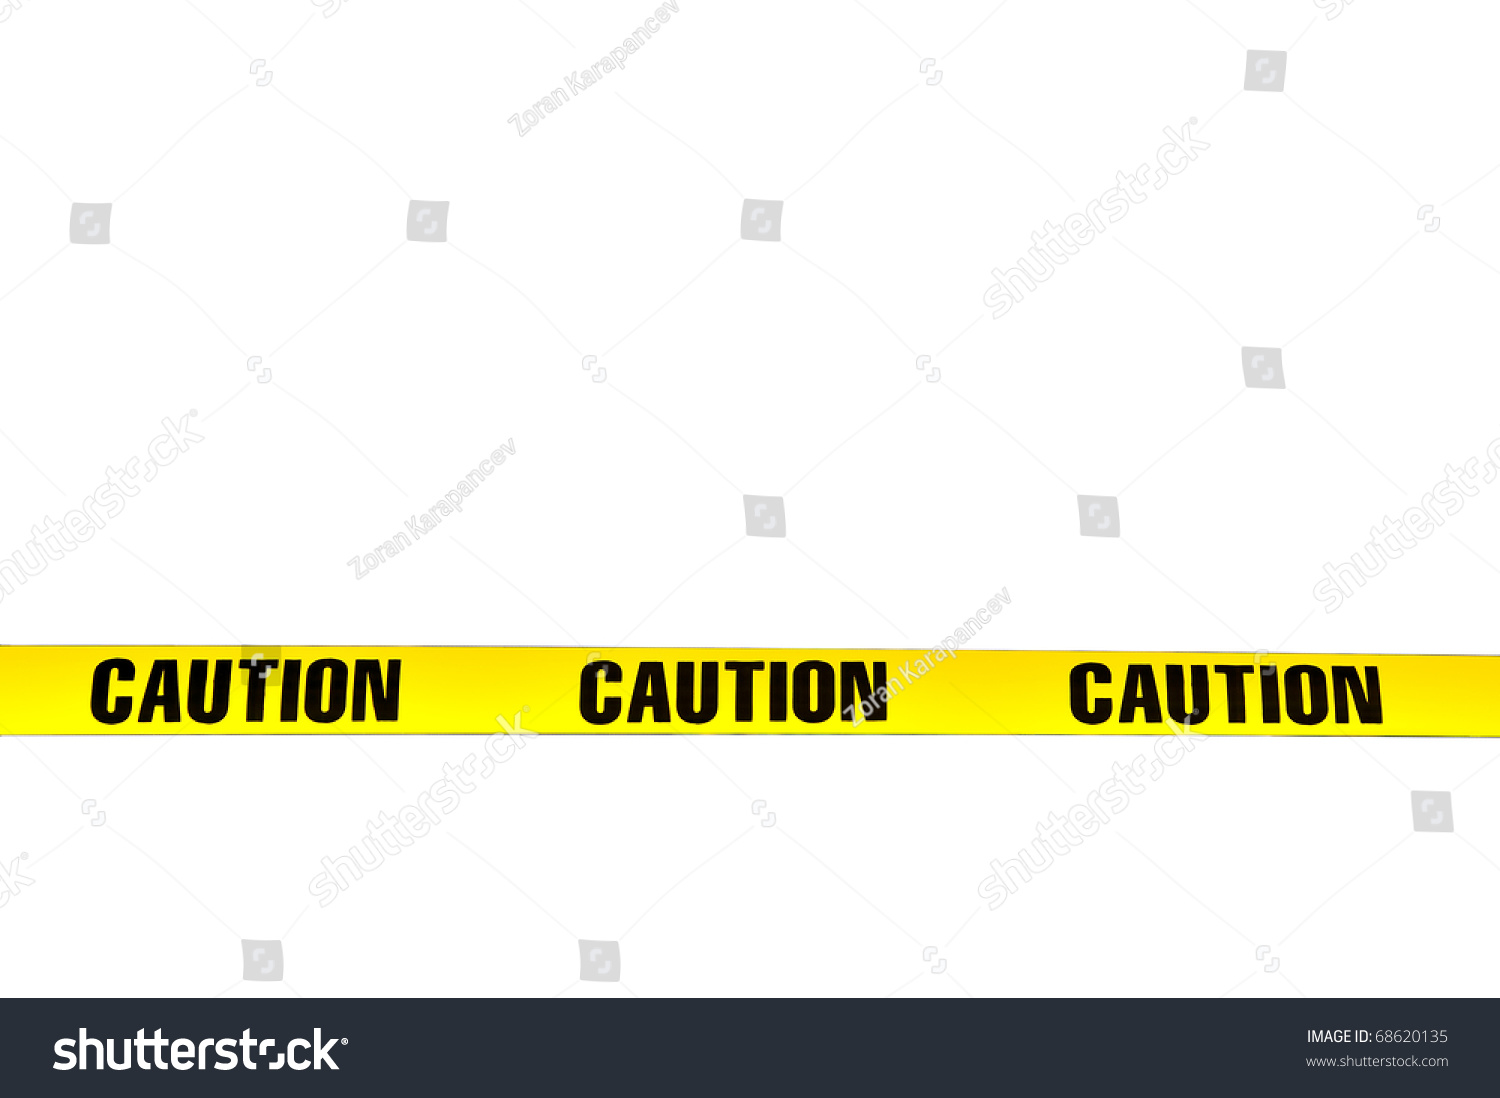 Off white diagonal striped plastic texture picture free photograph - Yellow Plastic Caution Tape Isolated On White Background Lower Third Position